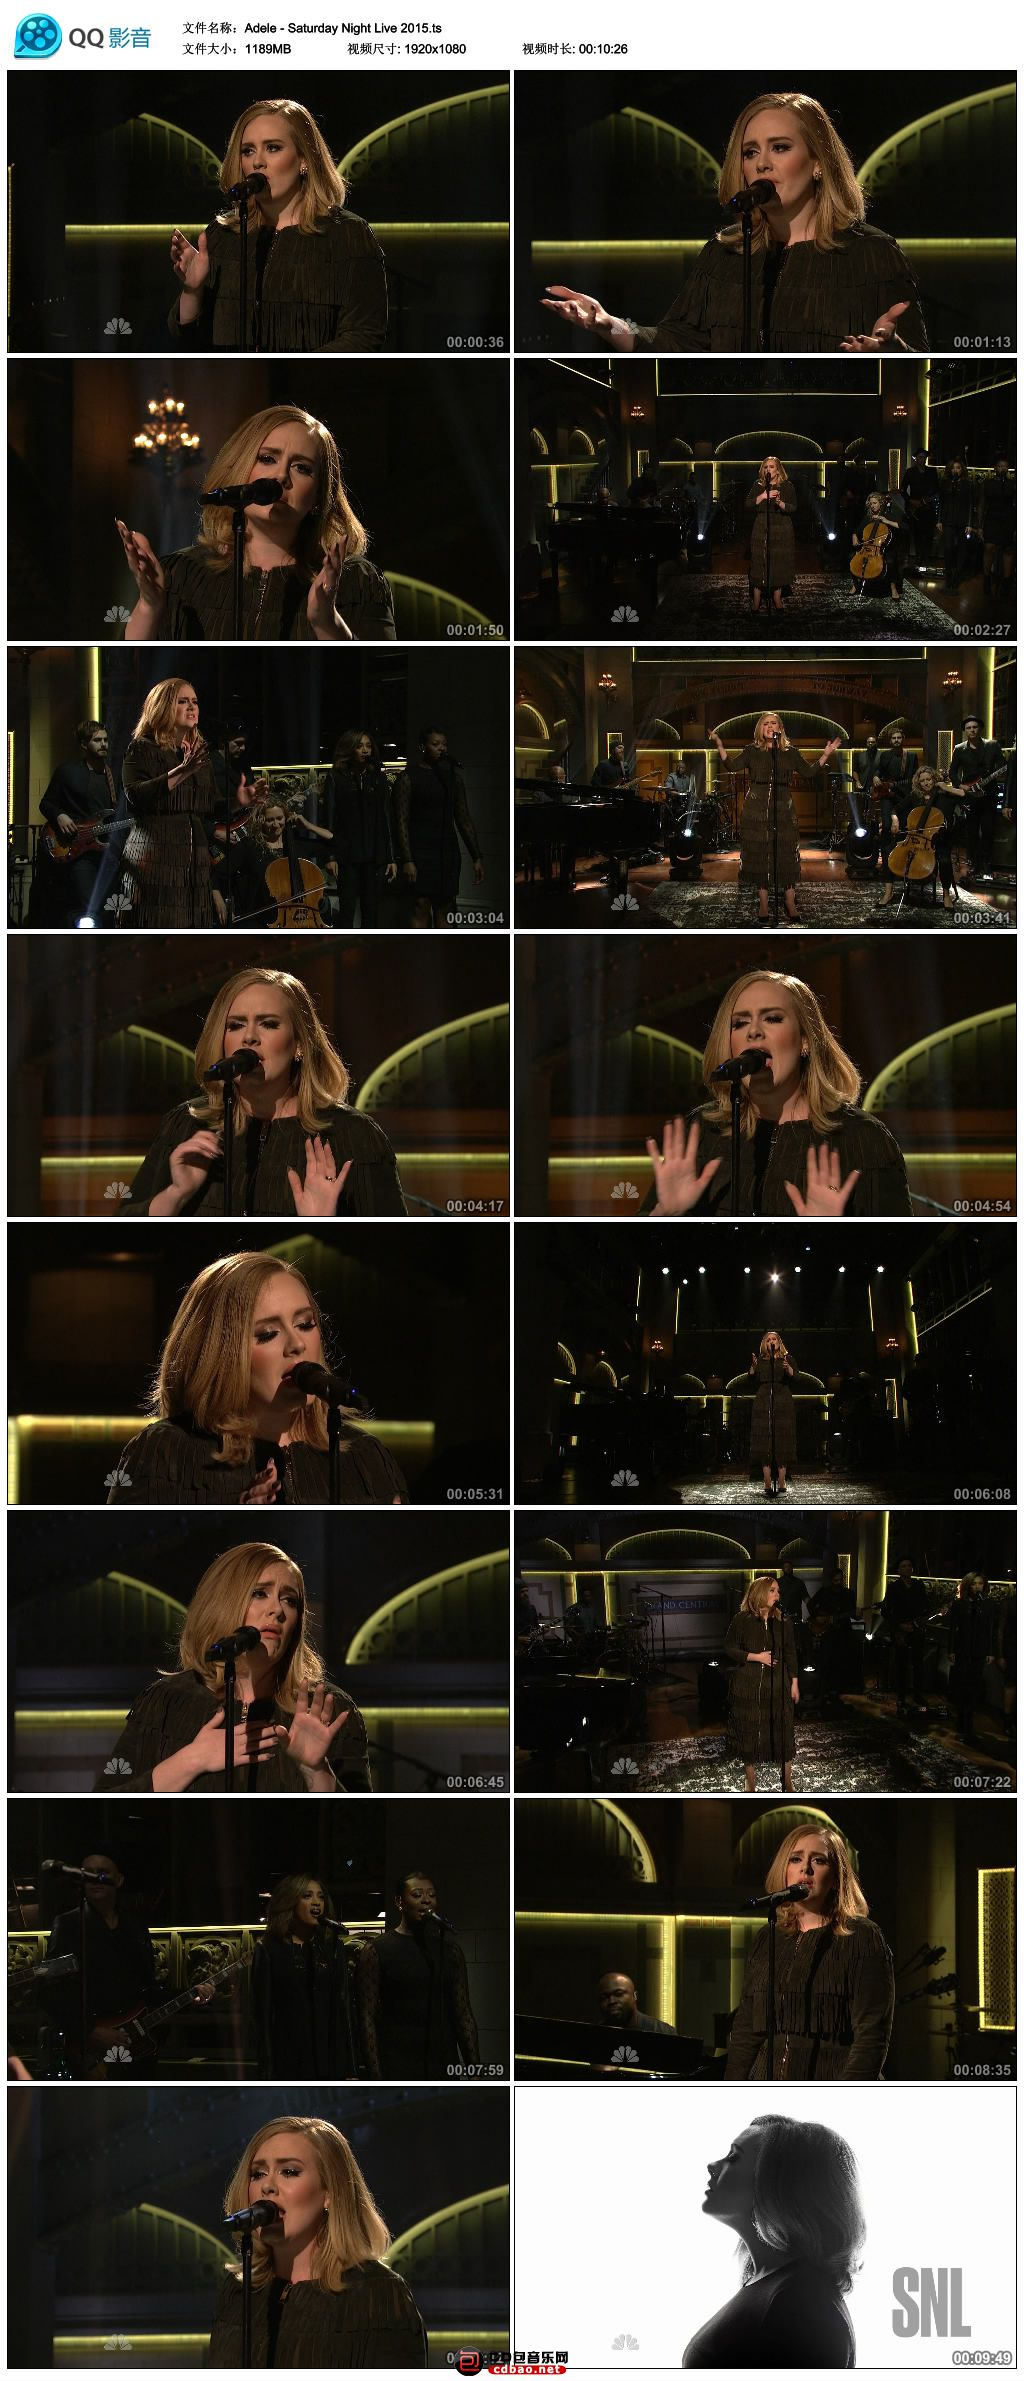 Adele - Saturday Night Live 2015.ts_thumbs_2015.12.08.00_11_25.jpg